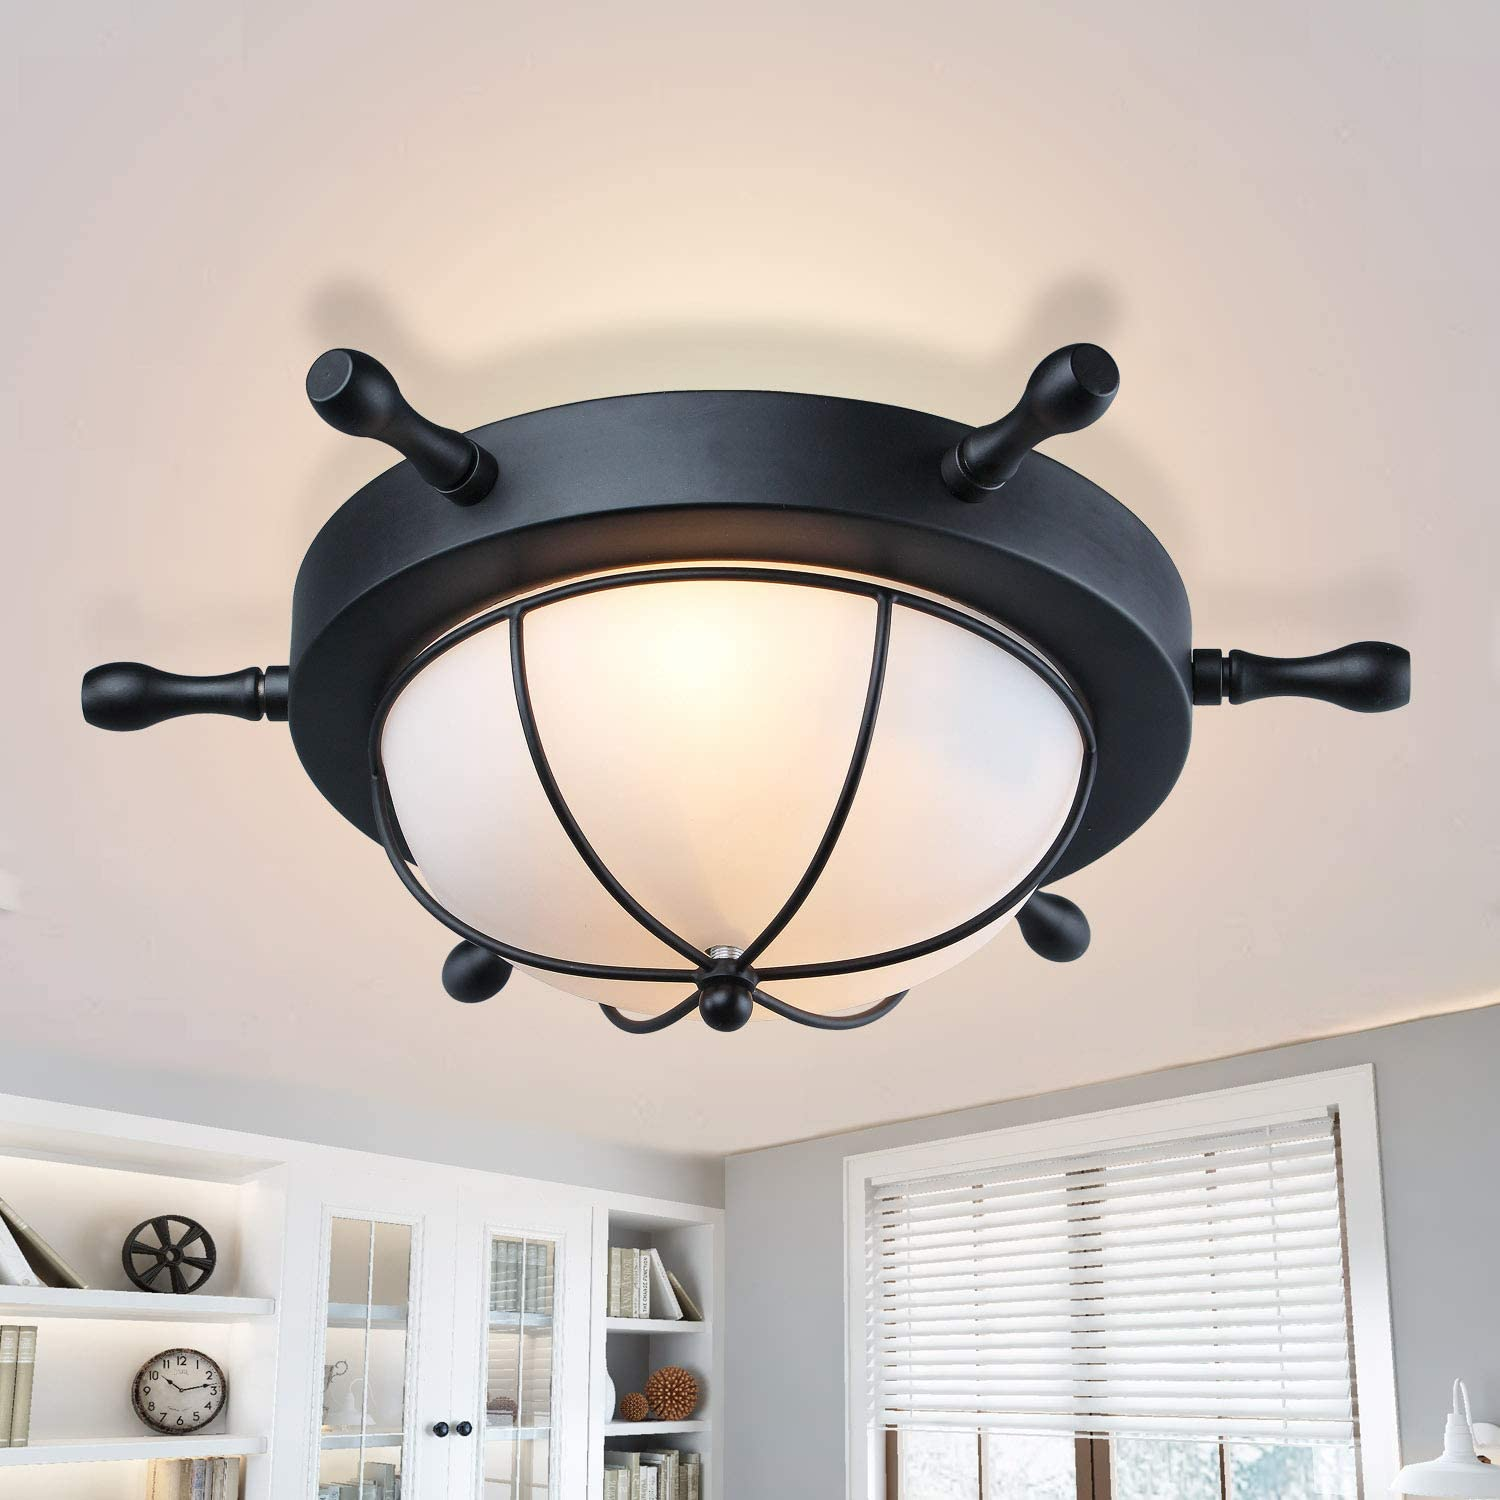 Lnc Flush Mount Ceiling Light Farmhouse Nautical Style With Black Finish And Frosted Glass For Bedroom And Hallway Amazon Com